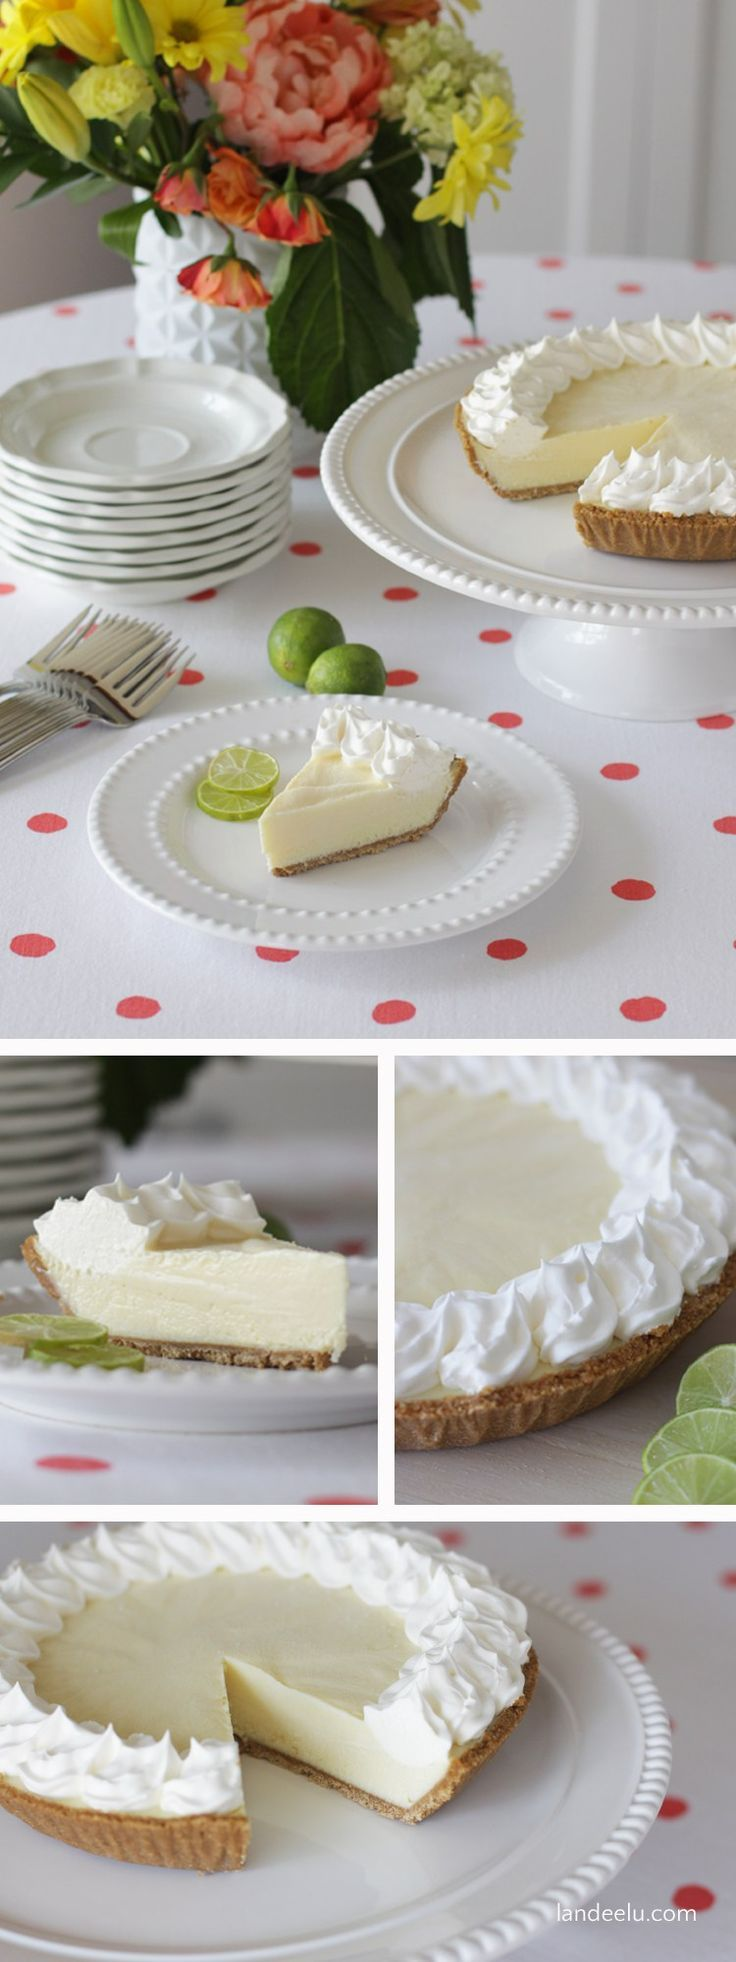 Looking for a way to entertain easily? Pull out an Edwards Dessert Key Lime Pie from the freezer and enjoy your evening! @edwardsdesserts #bringthesweet